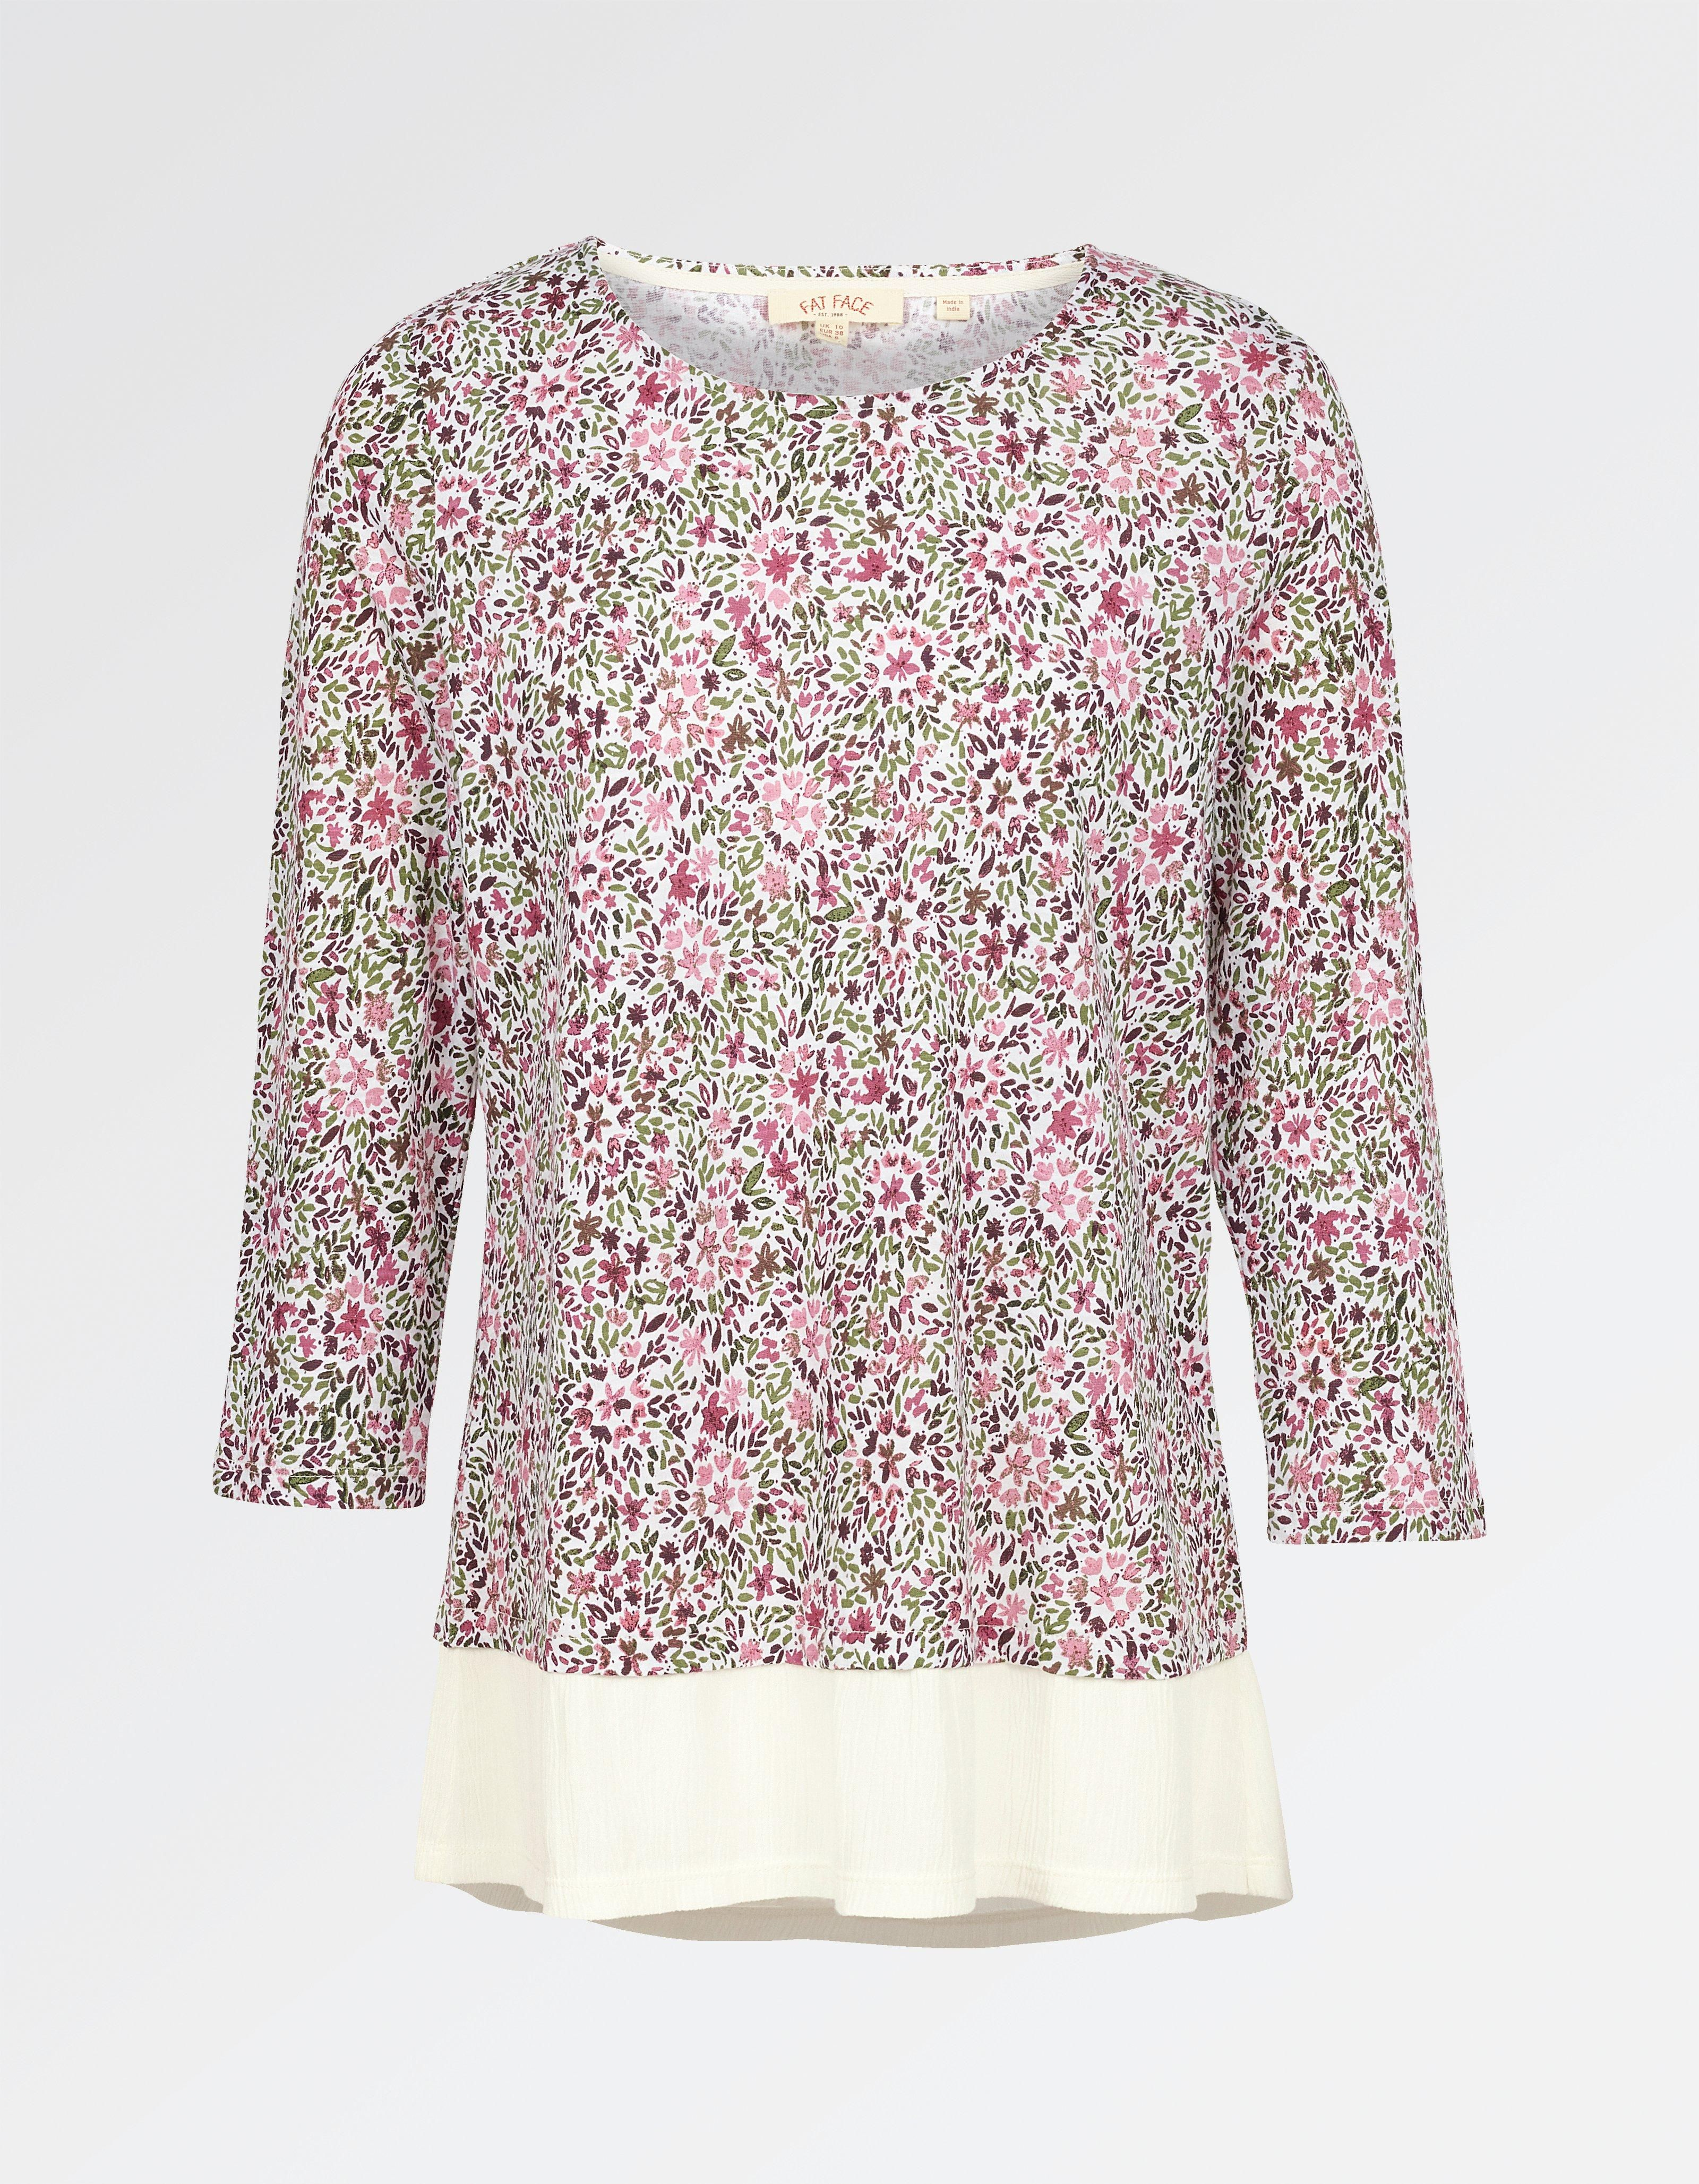 Fat Face Women's Maya Brushed Floral T-Shirt Low Price Fee Shipping For Sale New Arrival Fashion Countdown Package Cheap Online Classic Outlet Shop Offer hpfSD